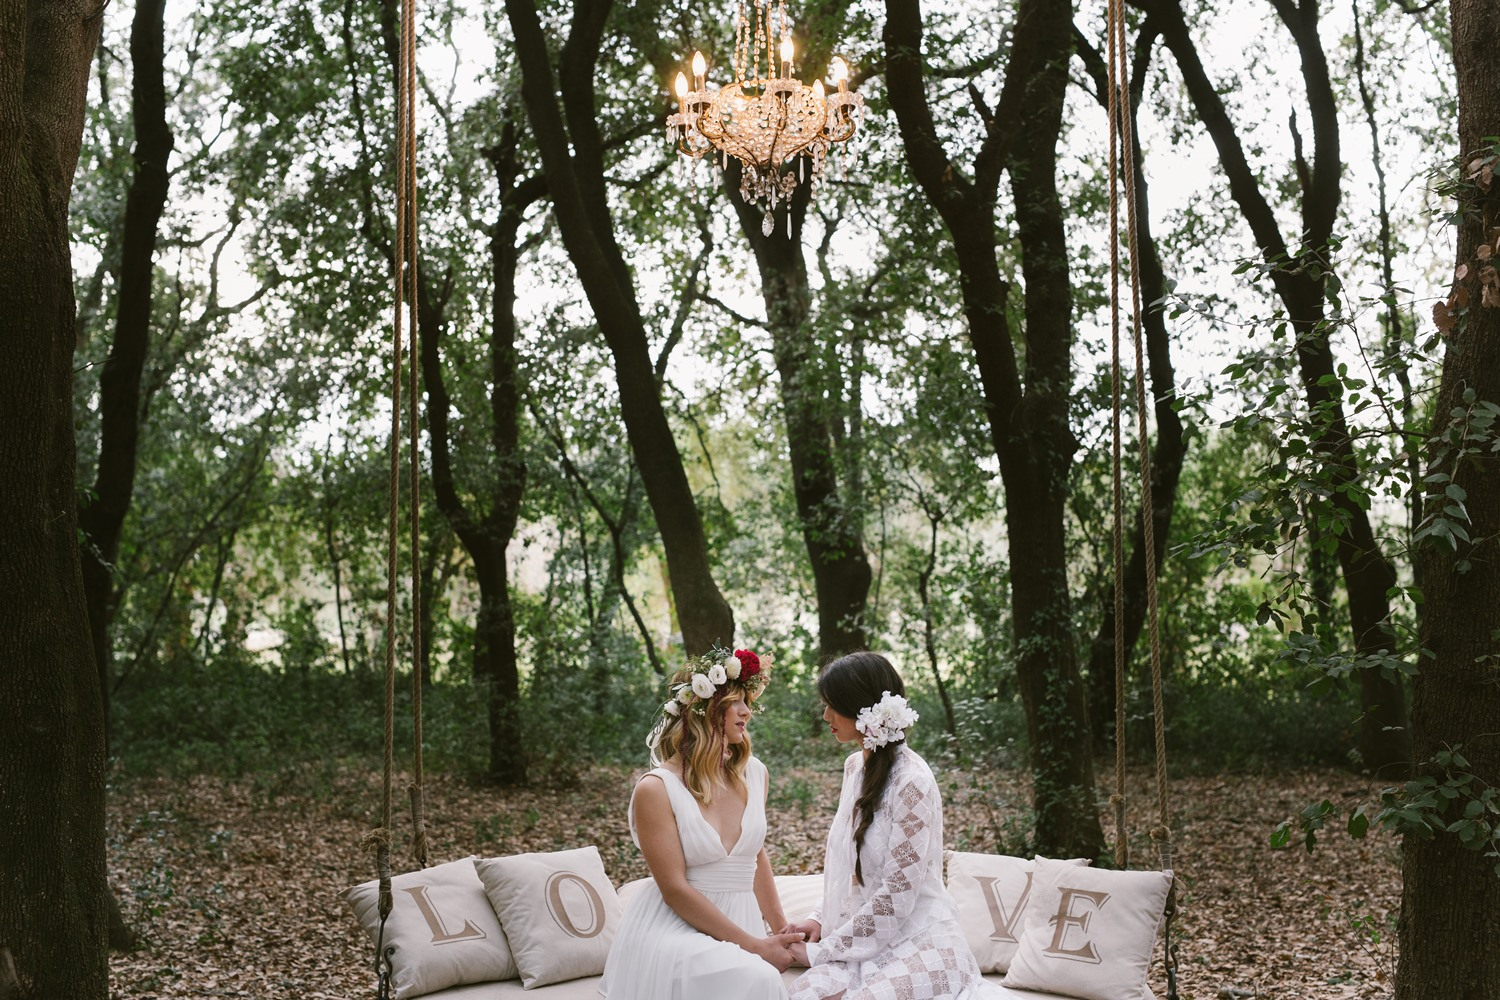 same-sex-wedding-puglia-italy-lecceventi-wedding-planner-43